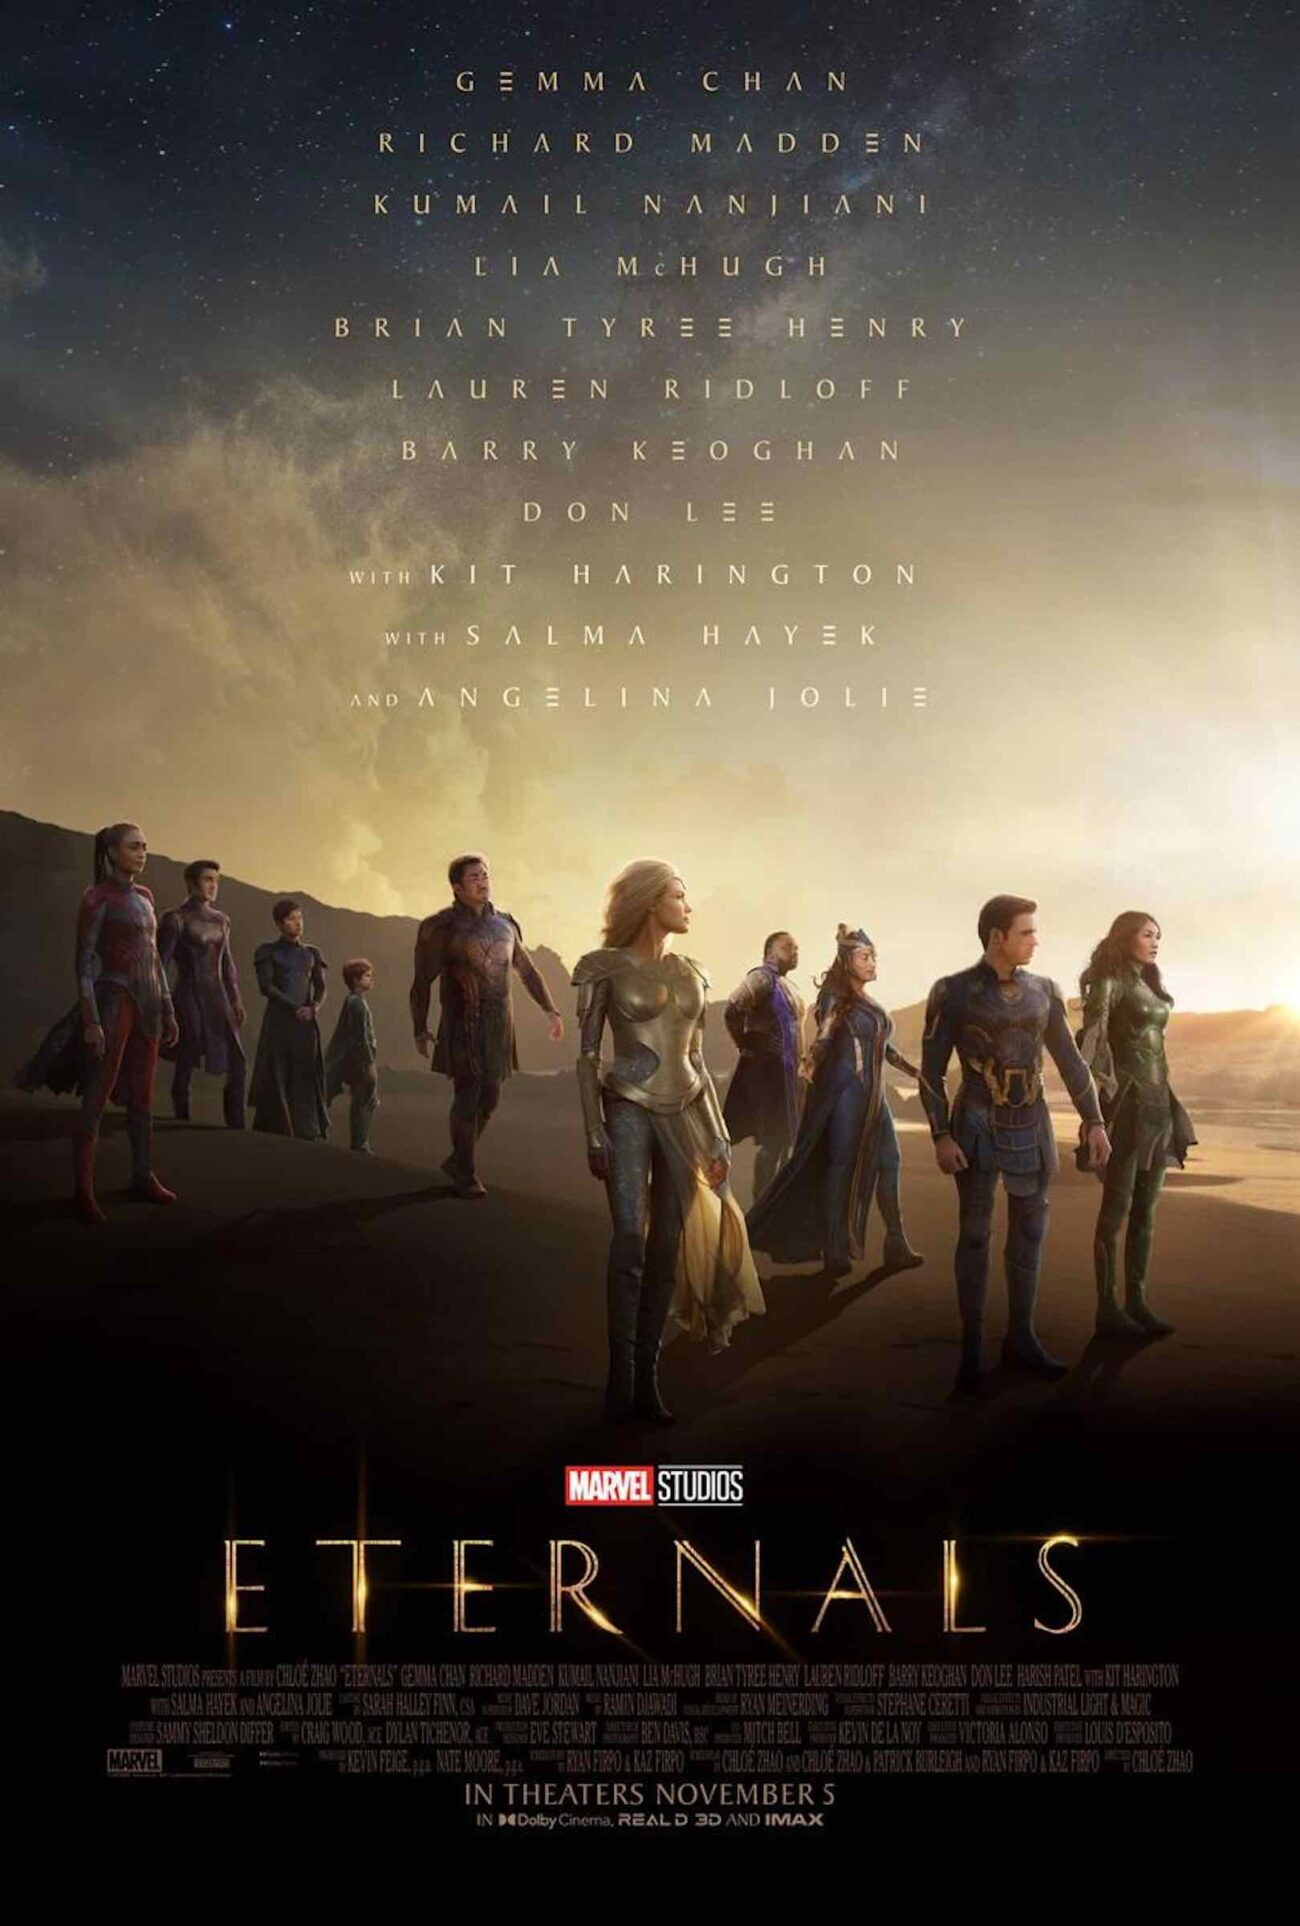 'Shang-Chi' is doing great, making us ask: Will Marvel's 'Eternals' get a full theatrical release? Get back to the theaters and dive in to find out!